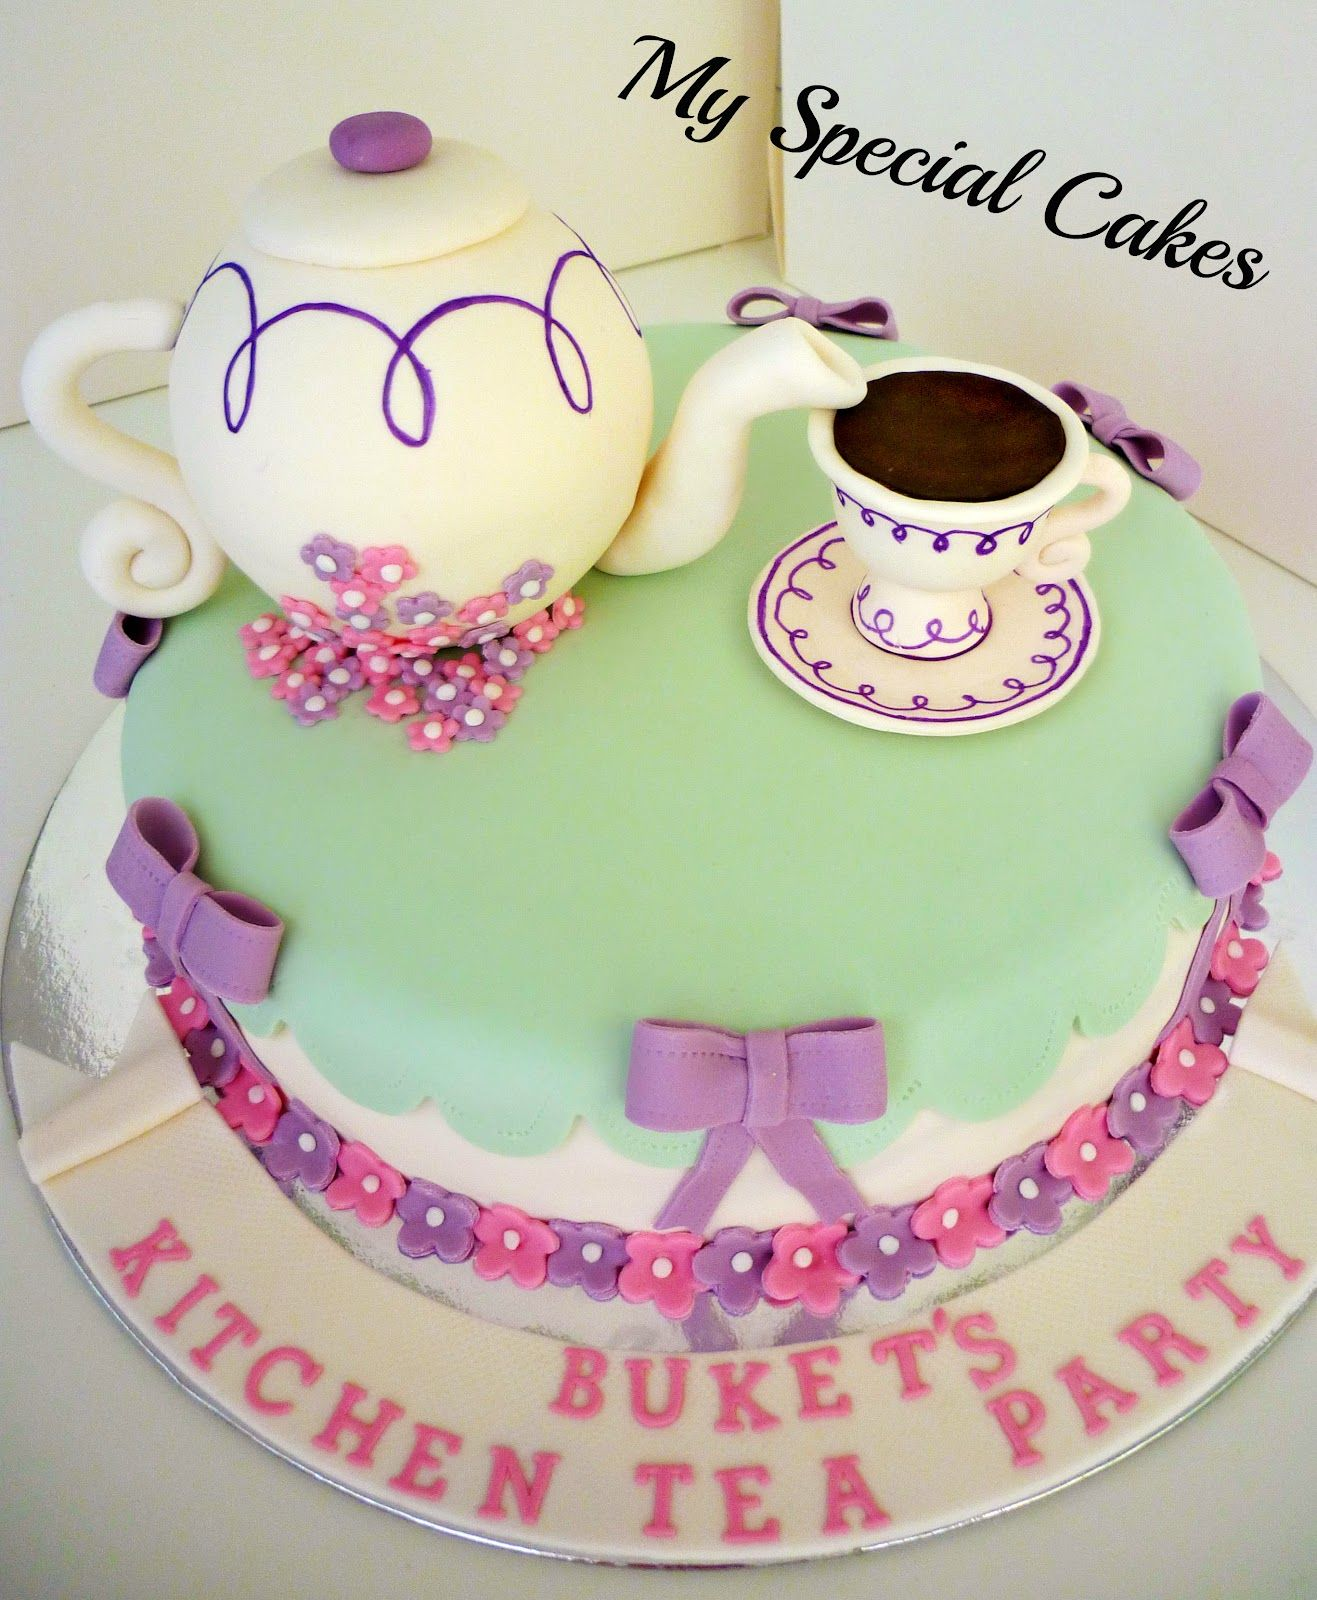 Kitchen Tea Cake My Beautiful Kitchen Tea Cake 3 My Kitchen Tea Pinterest